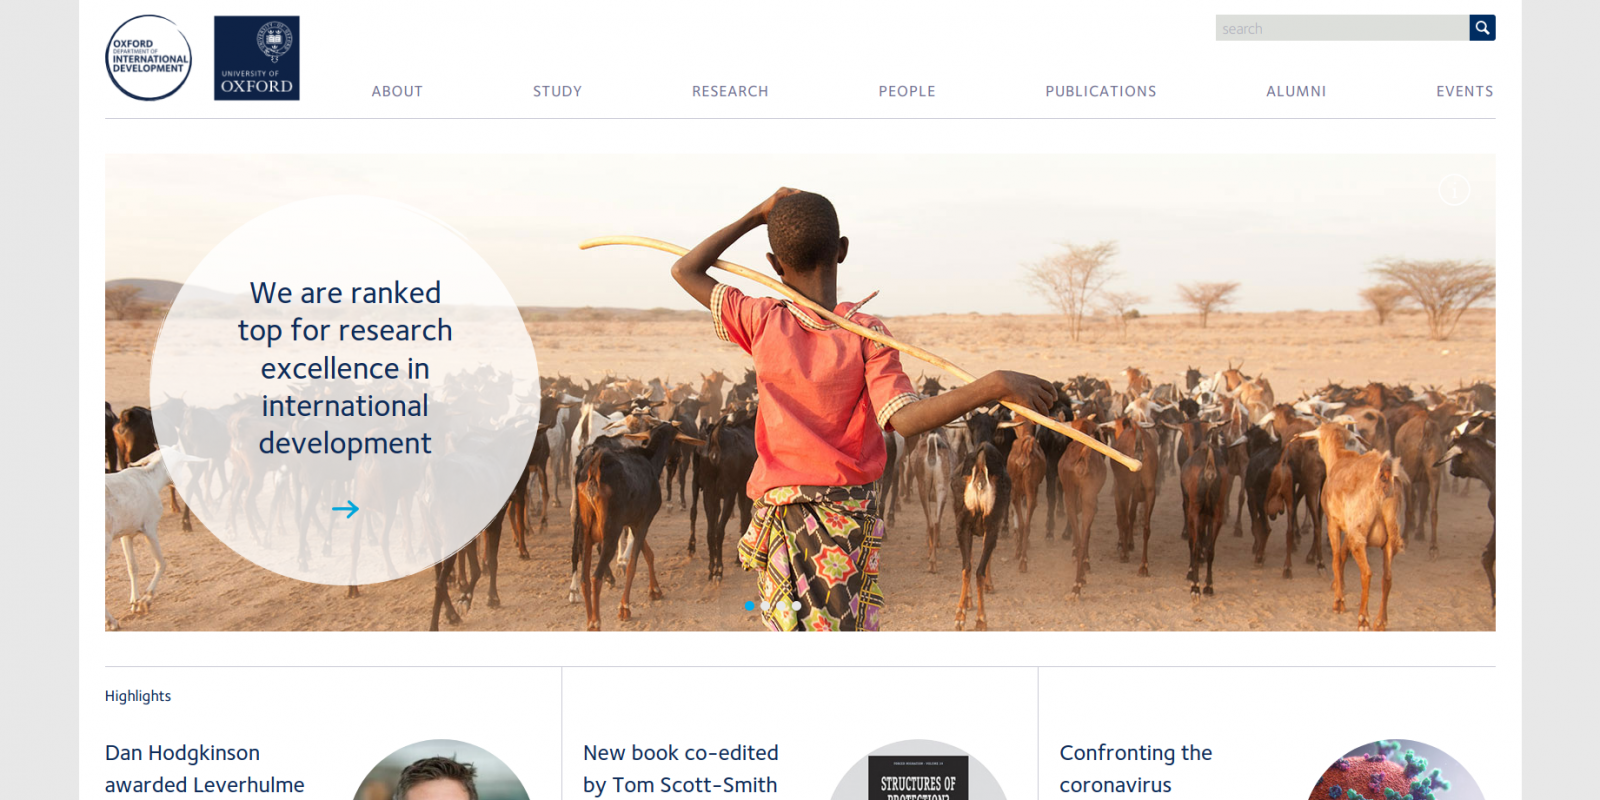 Oxford Department of International Development - website homepage